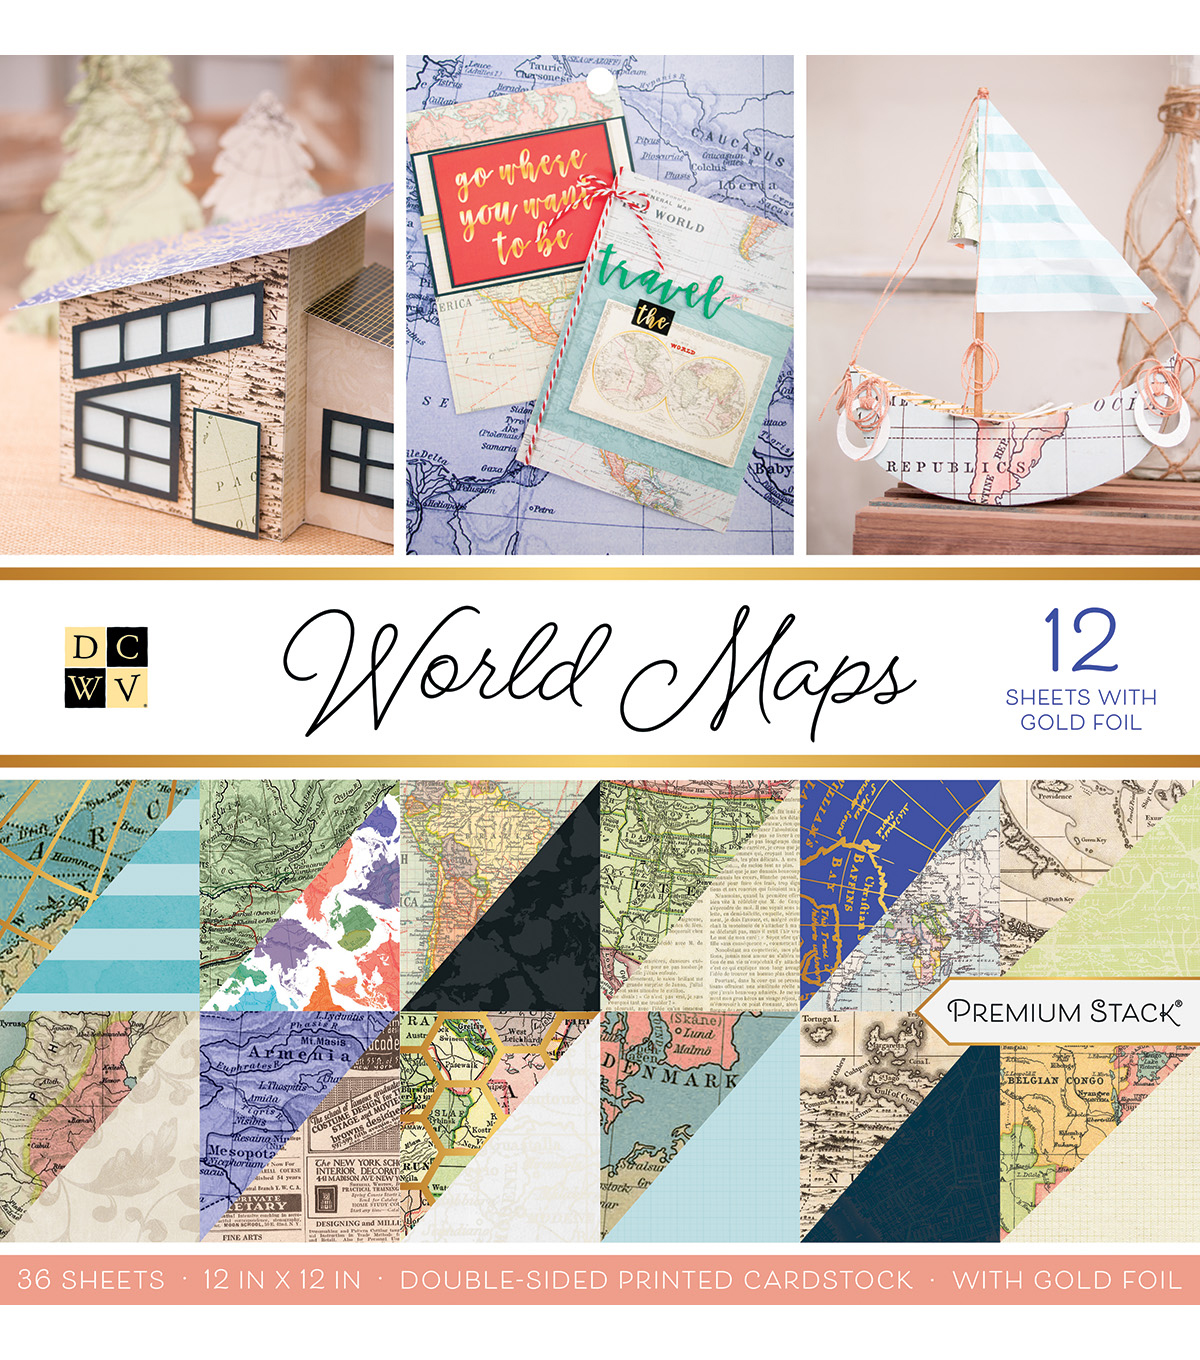 Dcwv 12''x12'' 36 Pack Premium Printed Cardstock Stack World Maps              Dcwv 12''x12'' 36 Pack Premium Printed Cardstock Stack World Maps by Dcwv